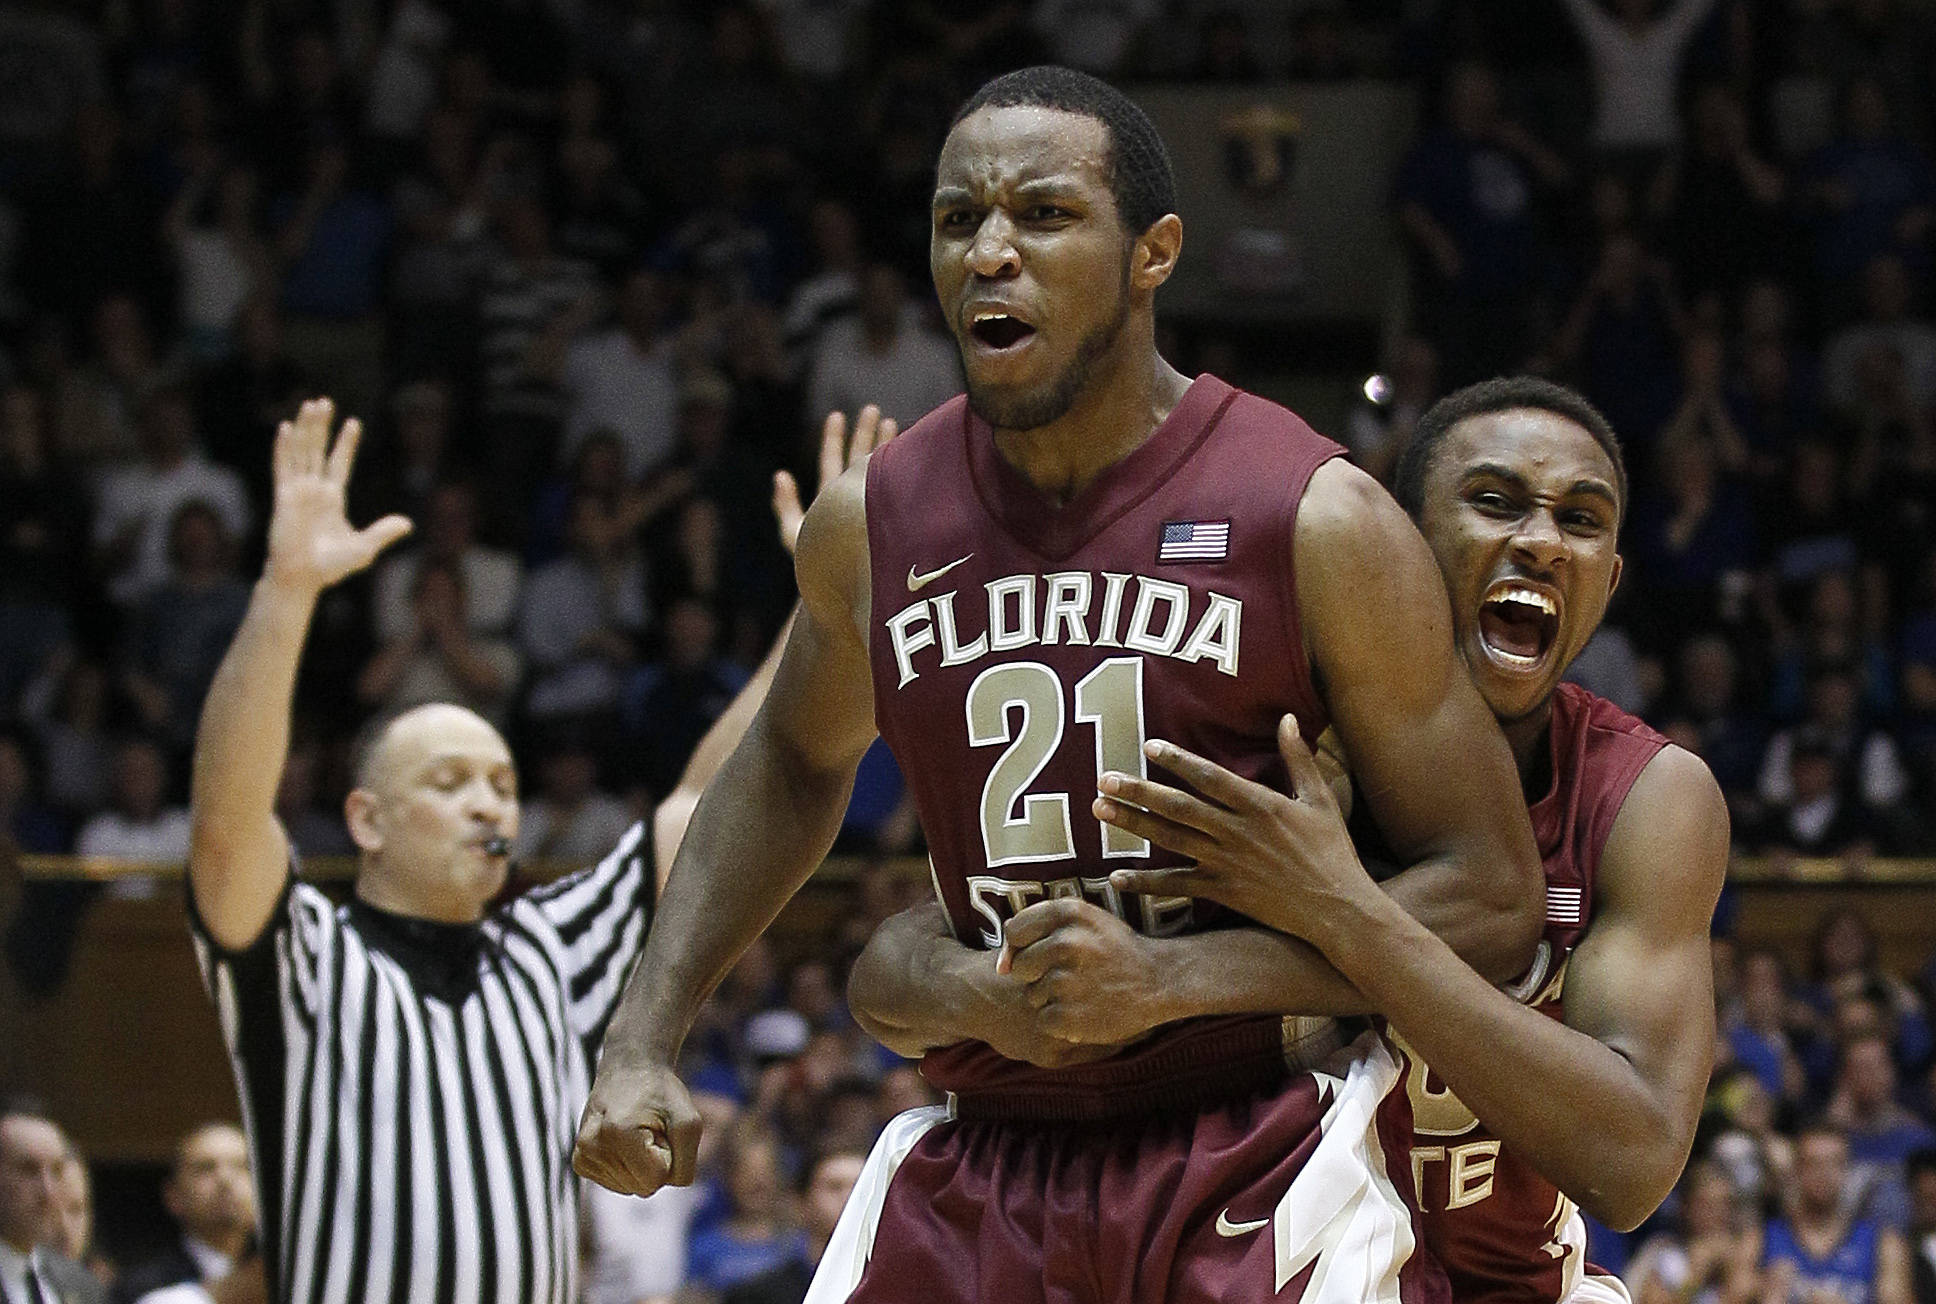 Florida State's Michael Snaer (21) and Ian Miller celebrate Snaer's game-winning basket against Duke during the second half. (AP Photo/Gerry Broome)